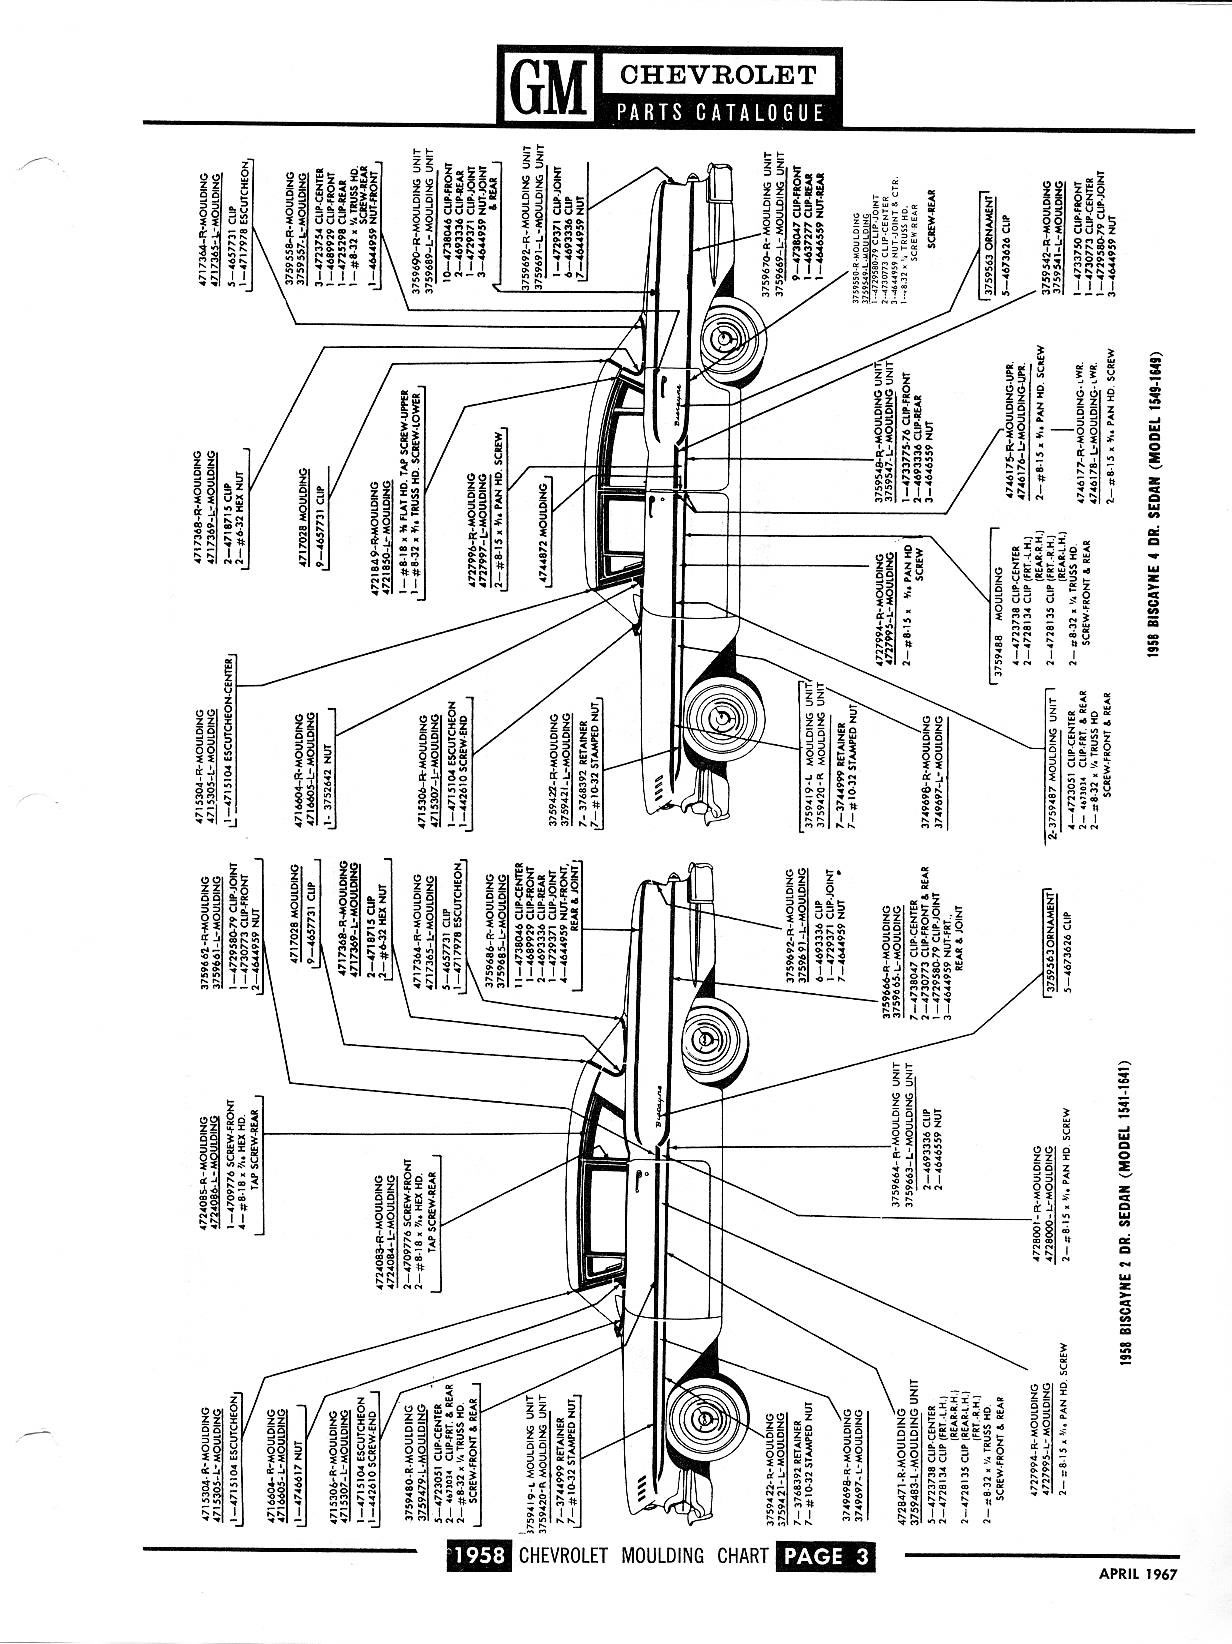 2004 Honda Cr V Body Parts Diagram. Honda. Auto Wiring Diagram